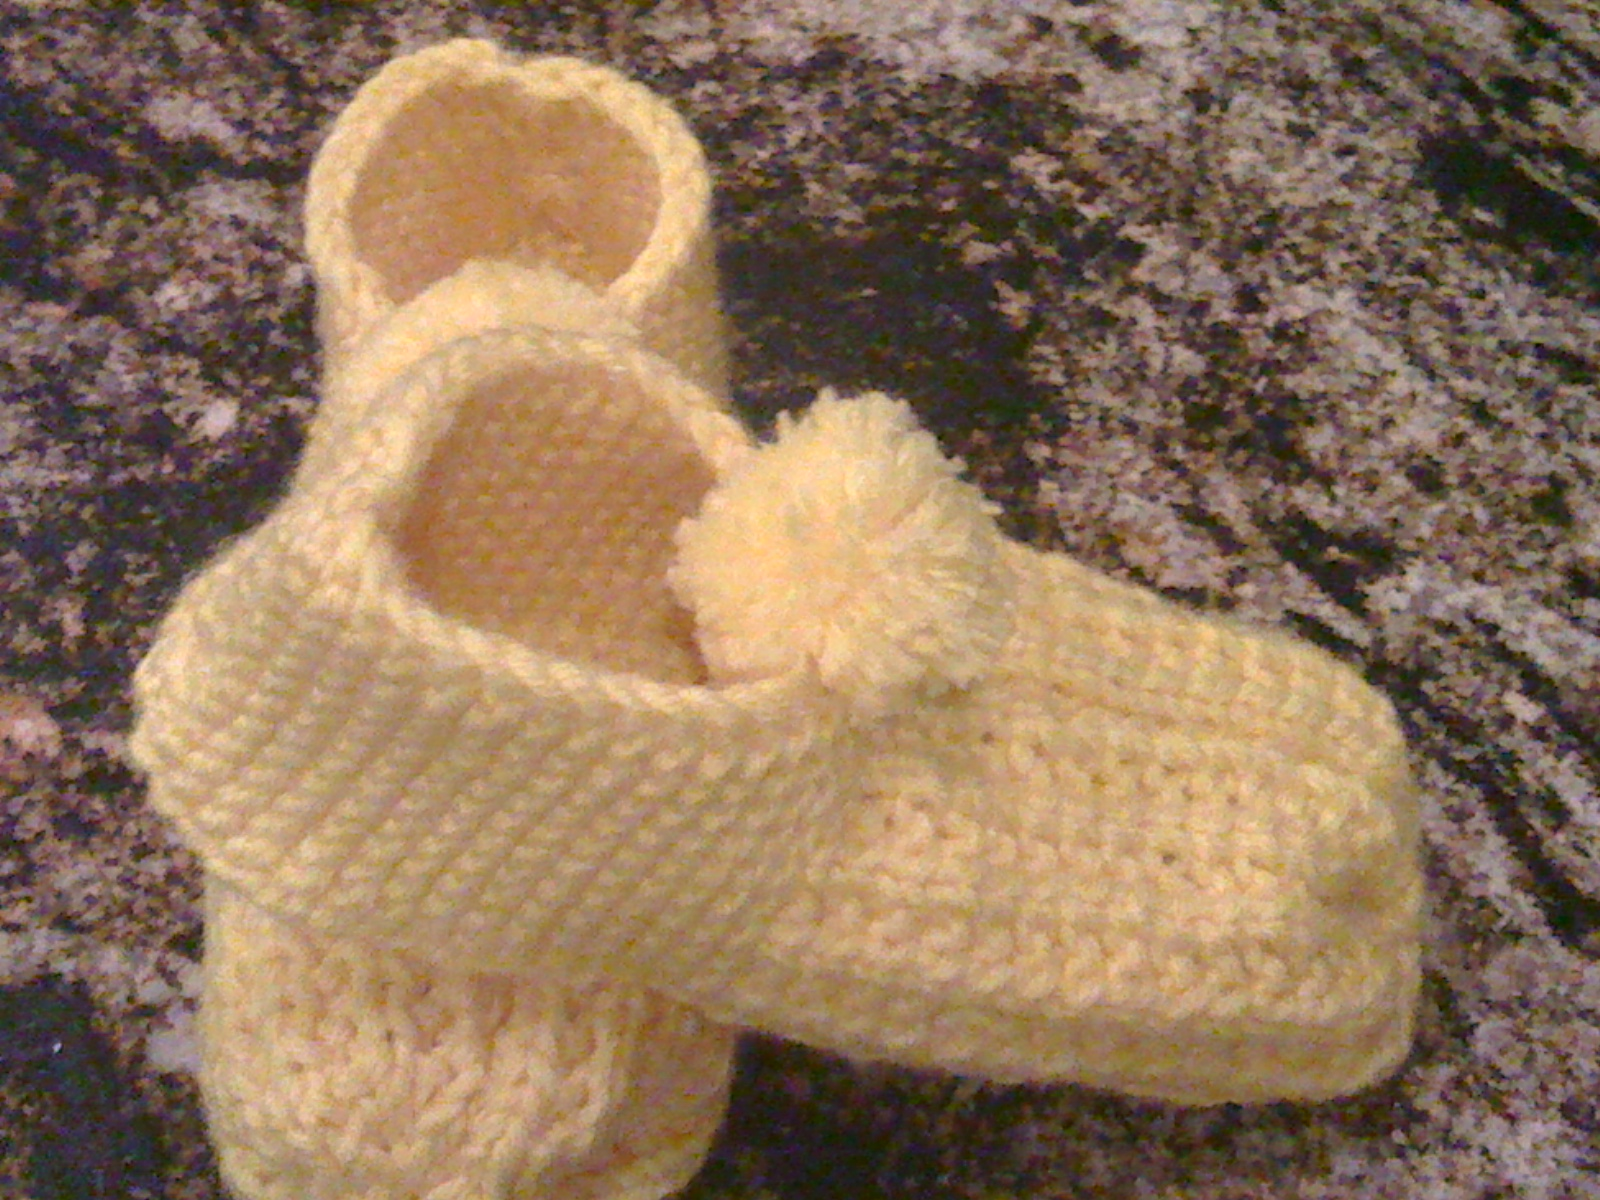 Mosier farms rounded heel knitted slipper pattern rounded heel knitted slipper pattern bankloansurffo Choice Image